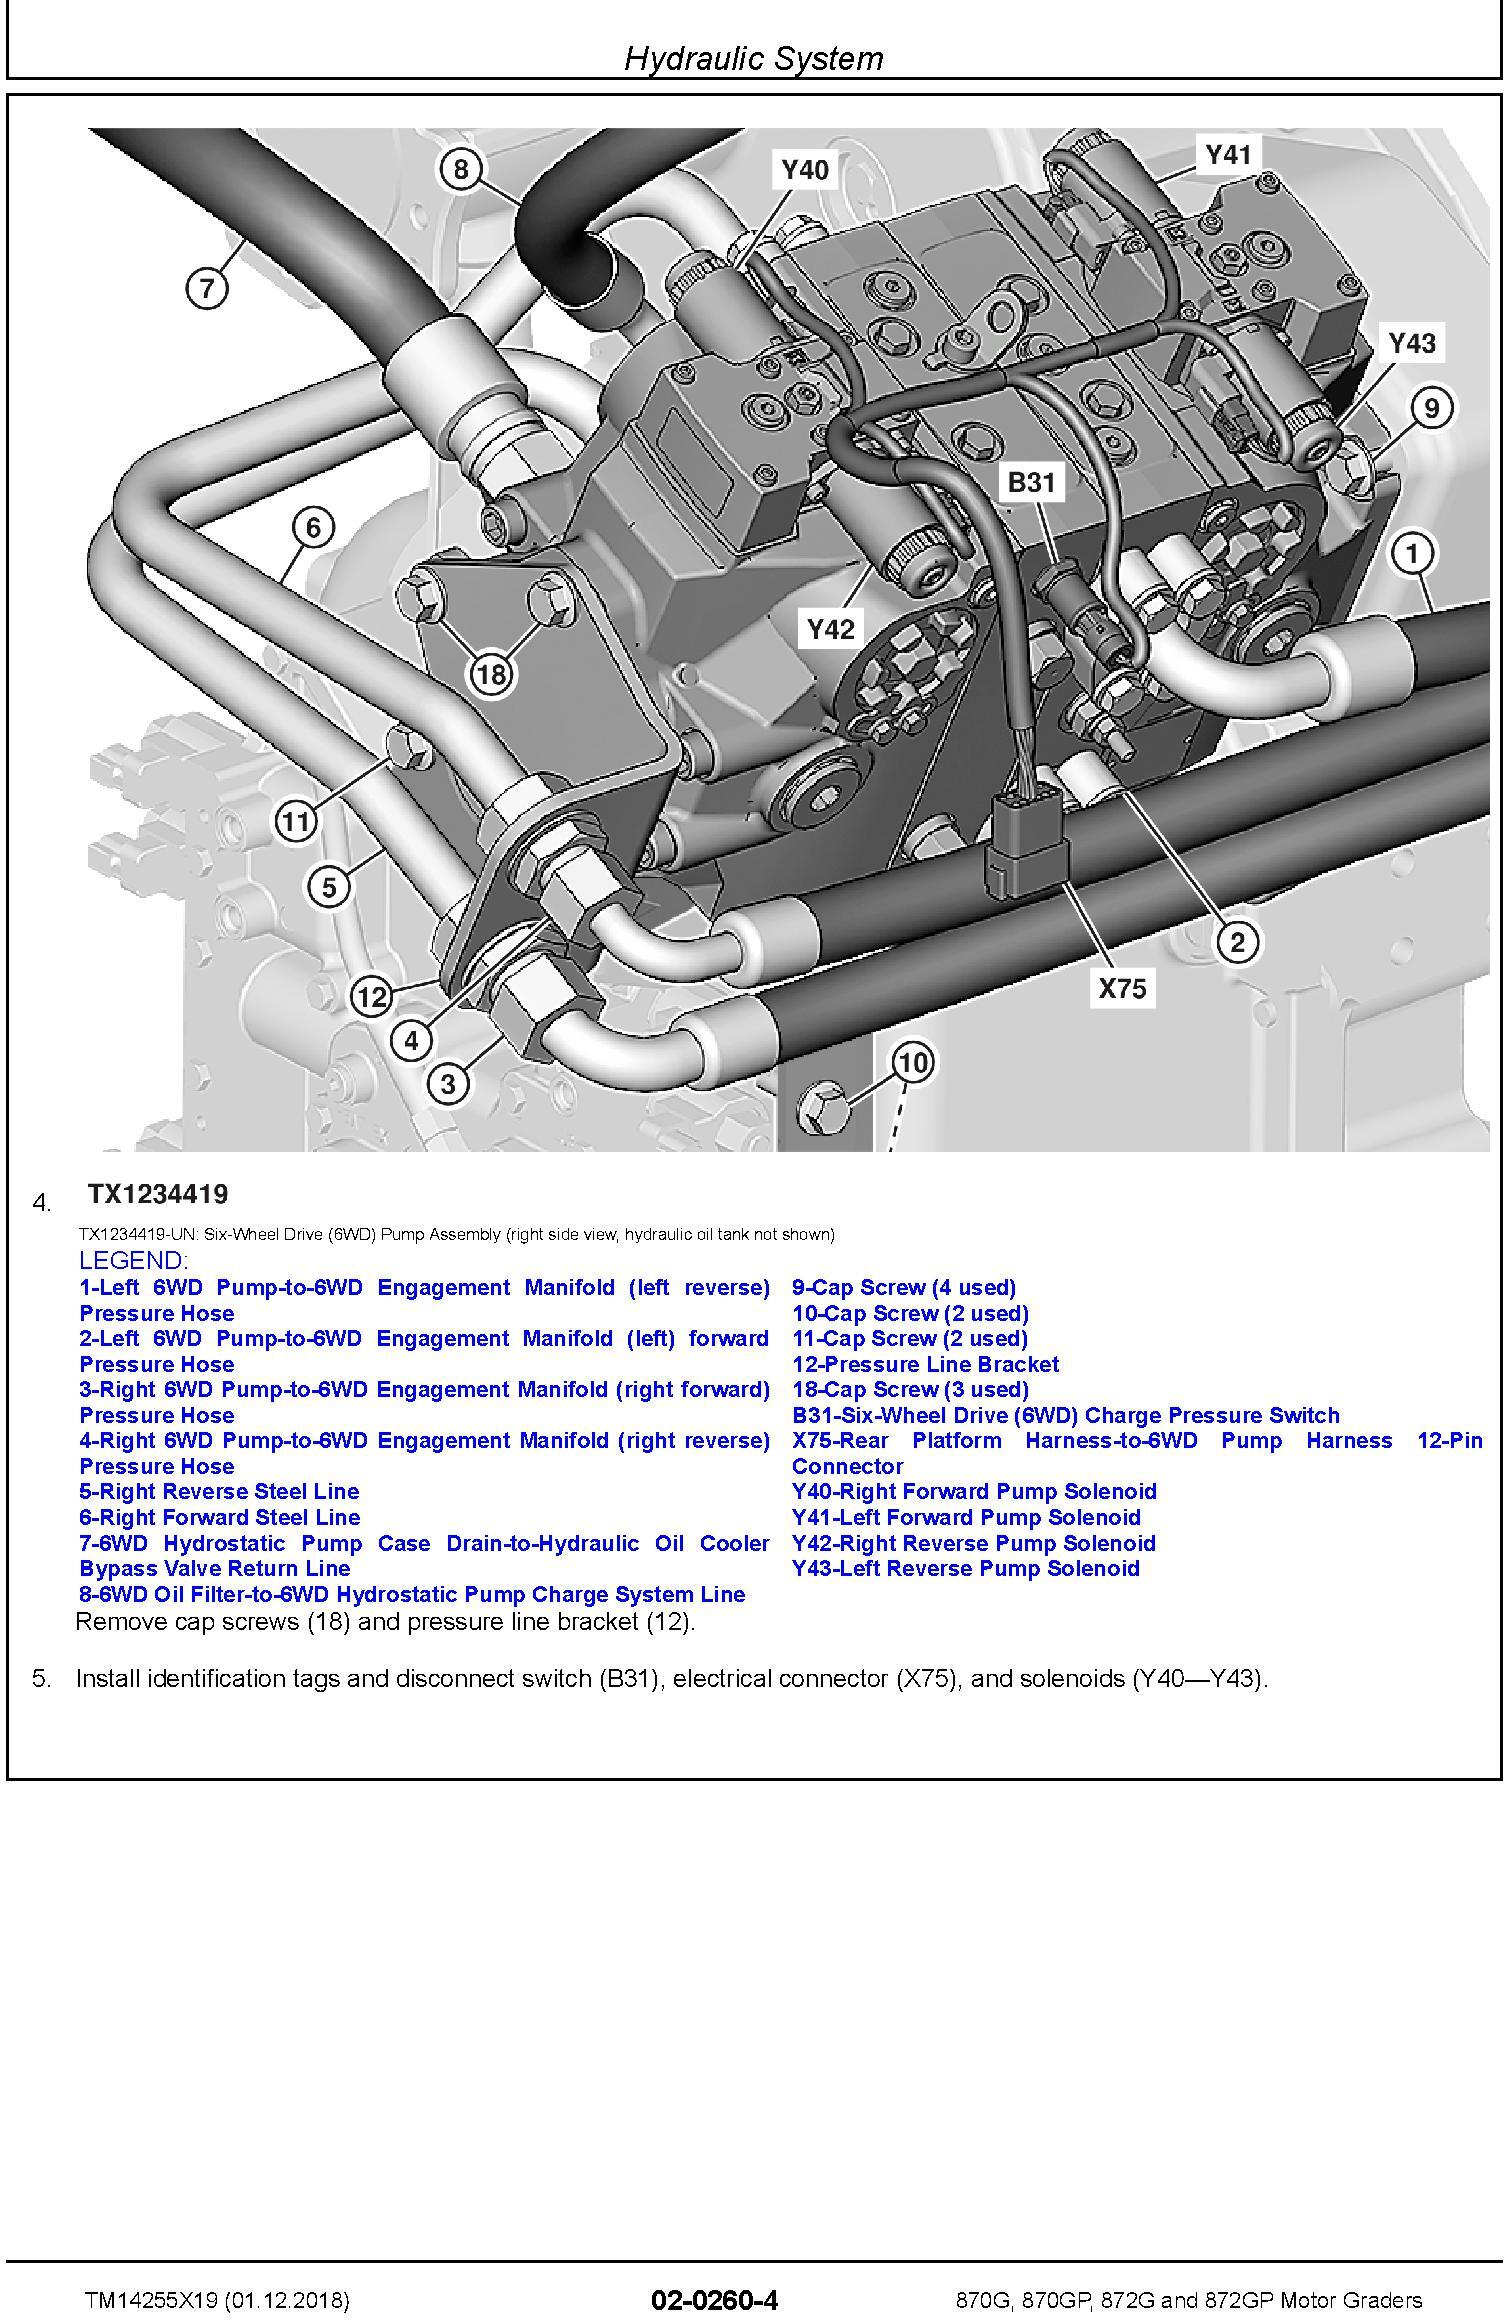 John Deere 870G, 870GP, 872G, 872GP (SN. C680878-,D680878-) Motor Graders Repair Manual (TM14255X19) - 3